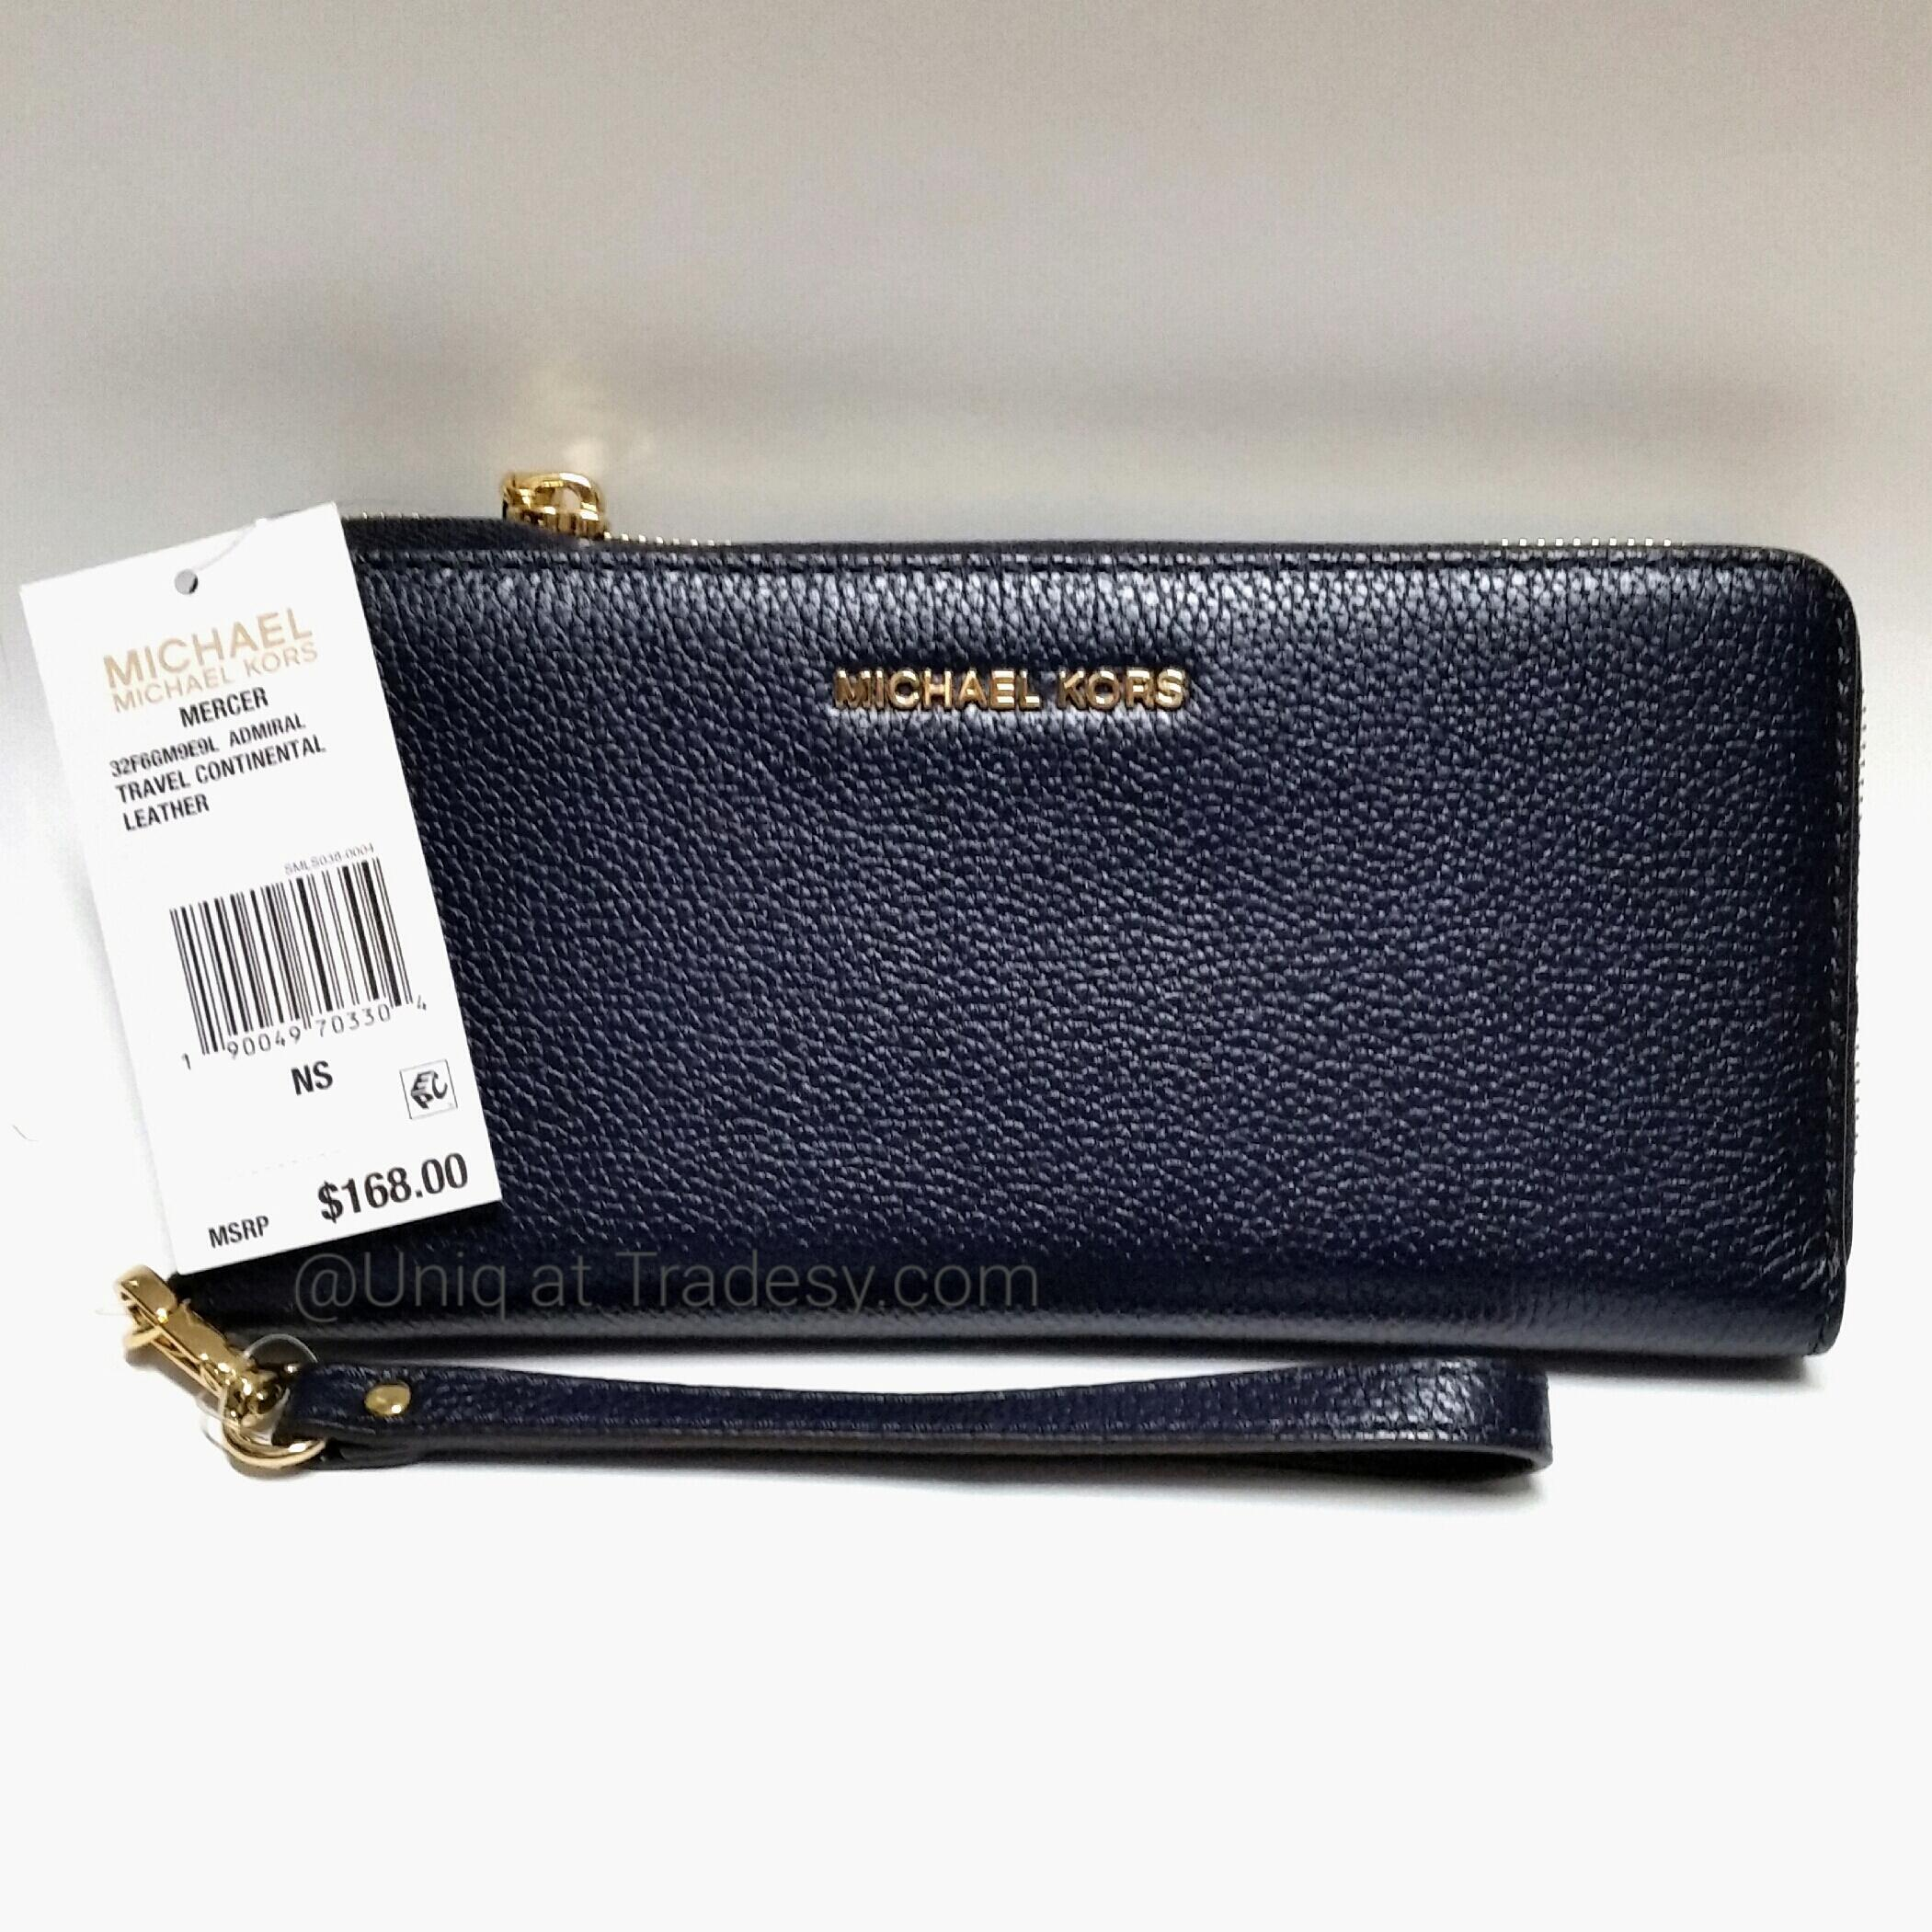 b3c86d9292b6 ... netherlands michael kors nwt travel continental zip around mercer  leather wristlet wallet bag. 123456789 50d85